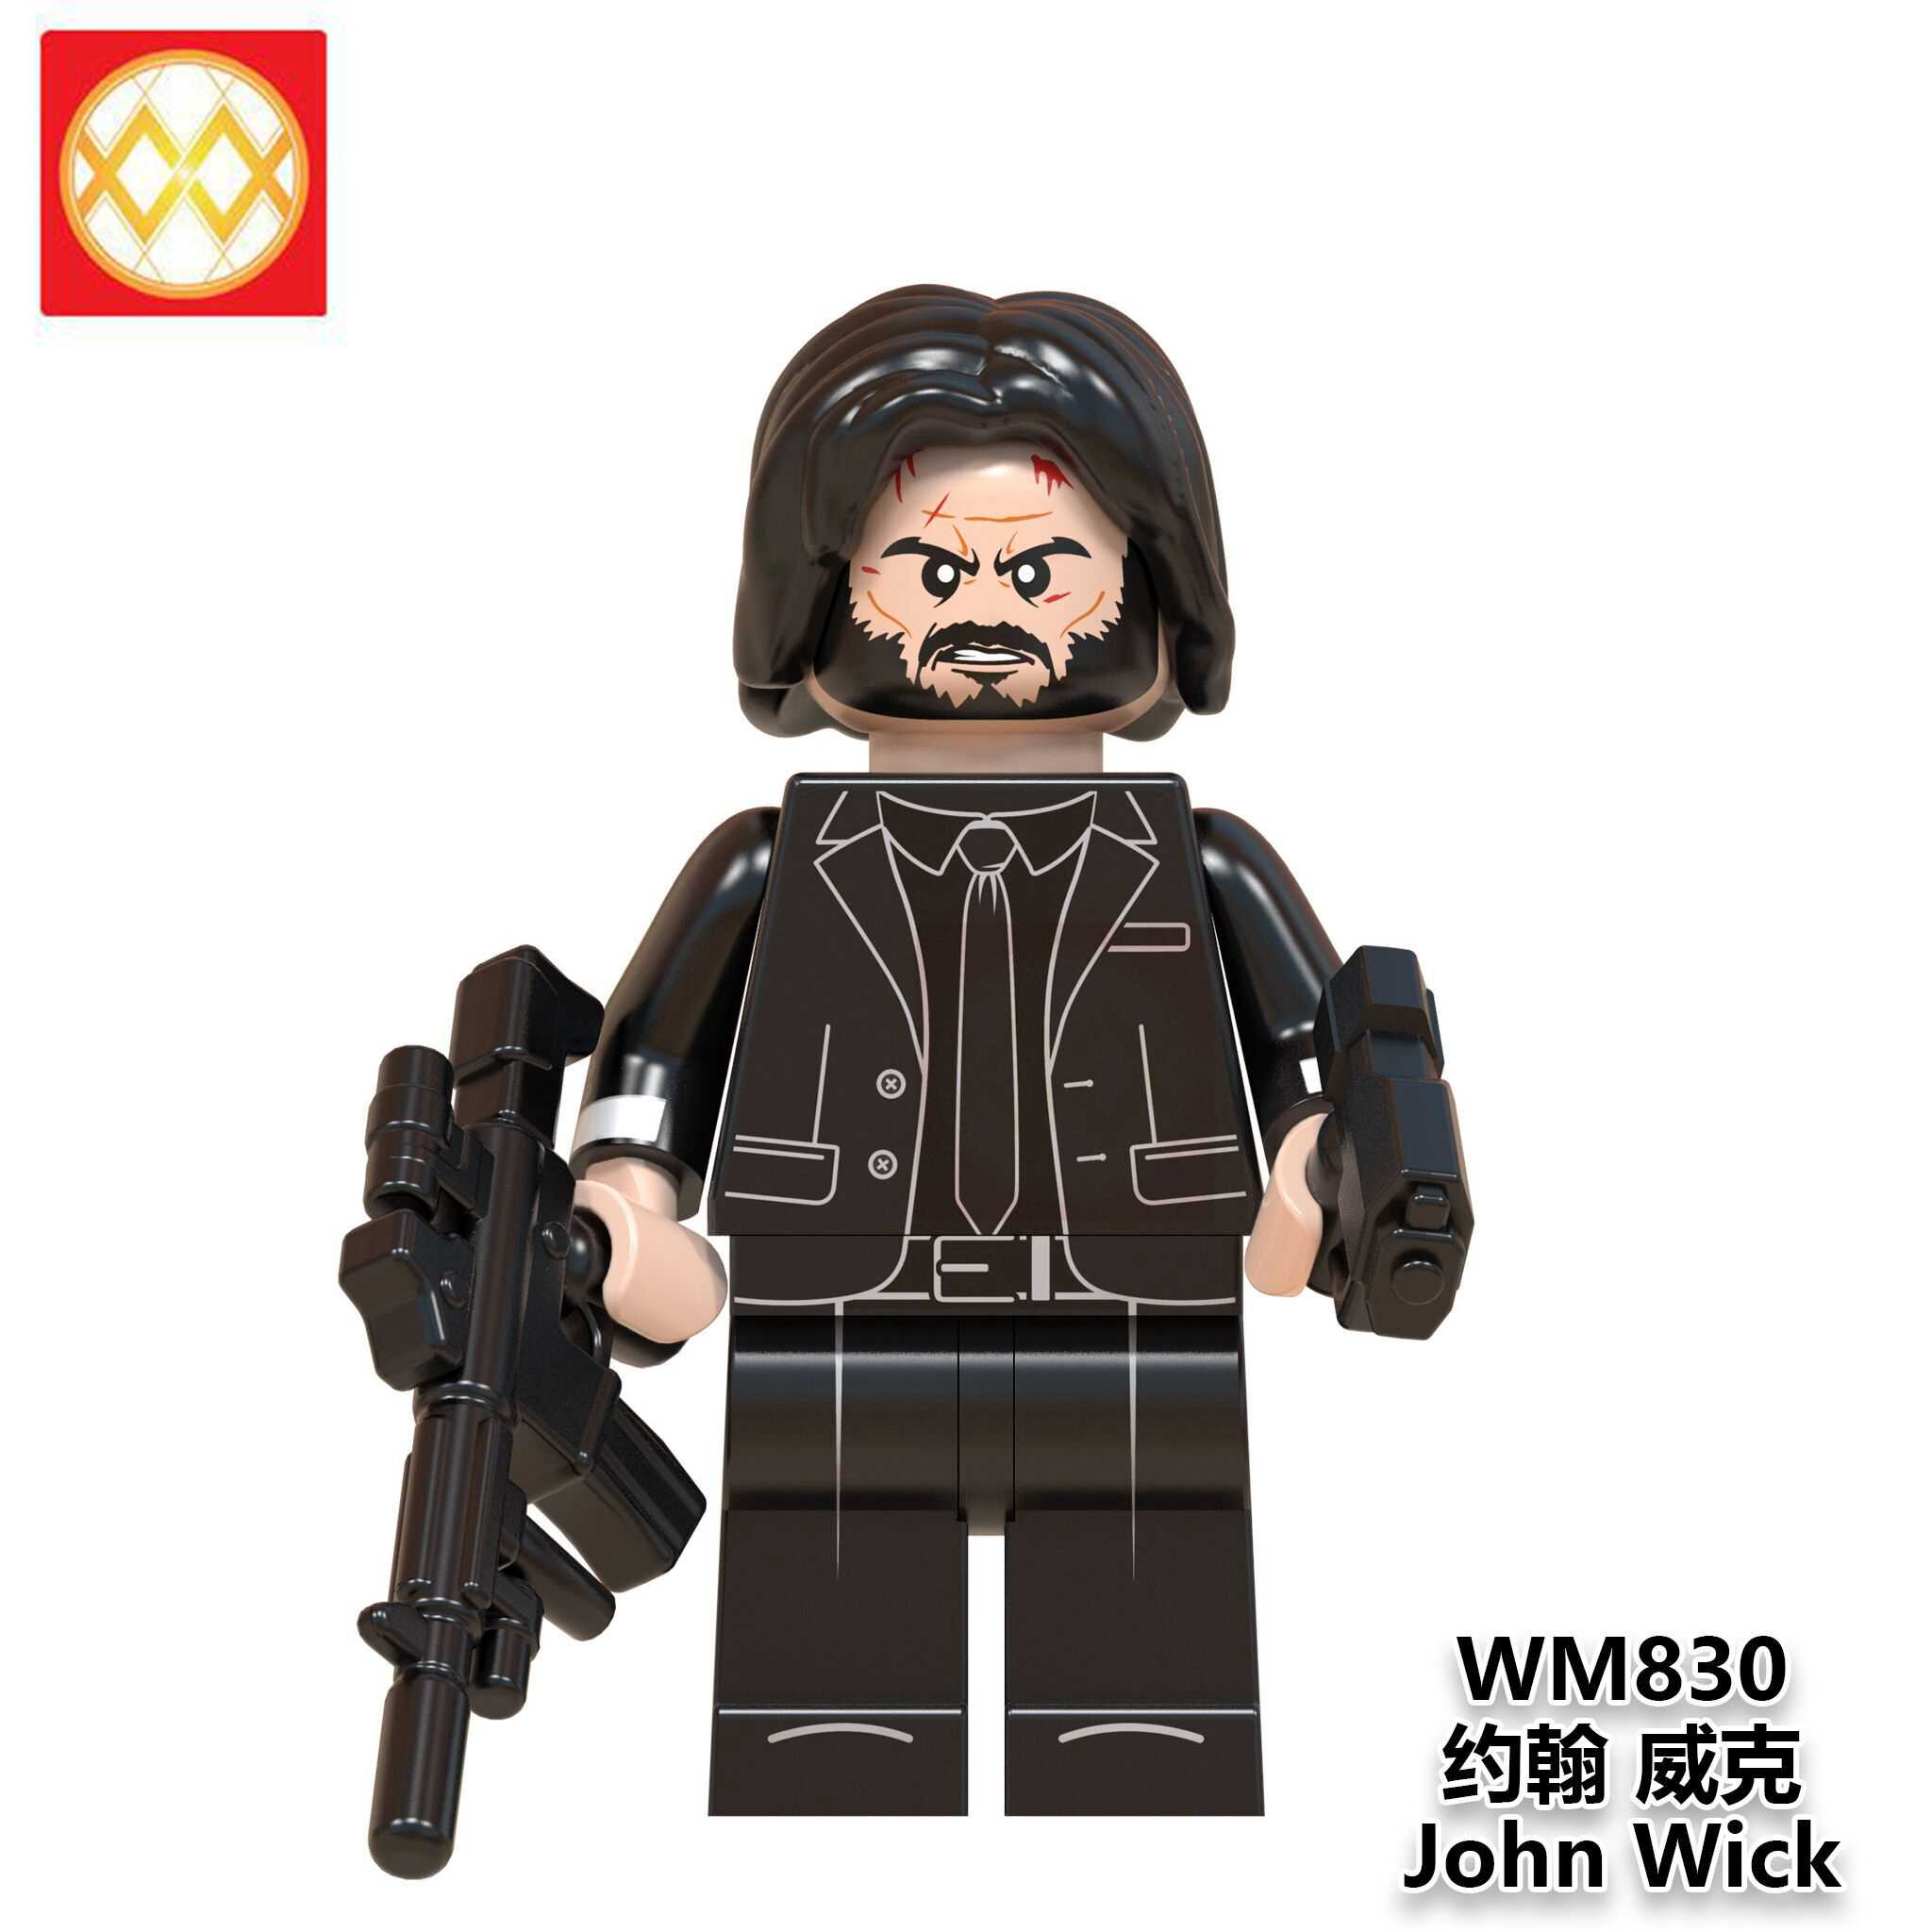 Single WM830 John Wich Chapter House of Paper Doctor Who Strange Things Building Blocks Action Model Toys For Children Gift